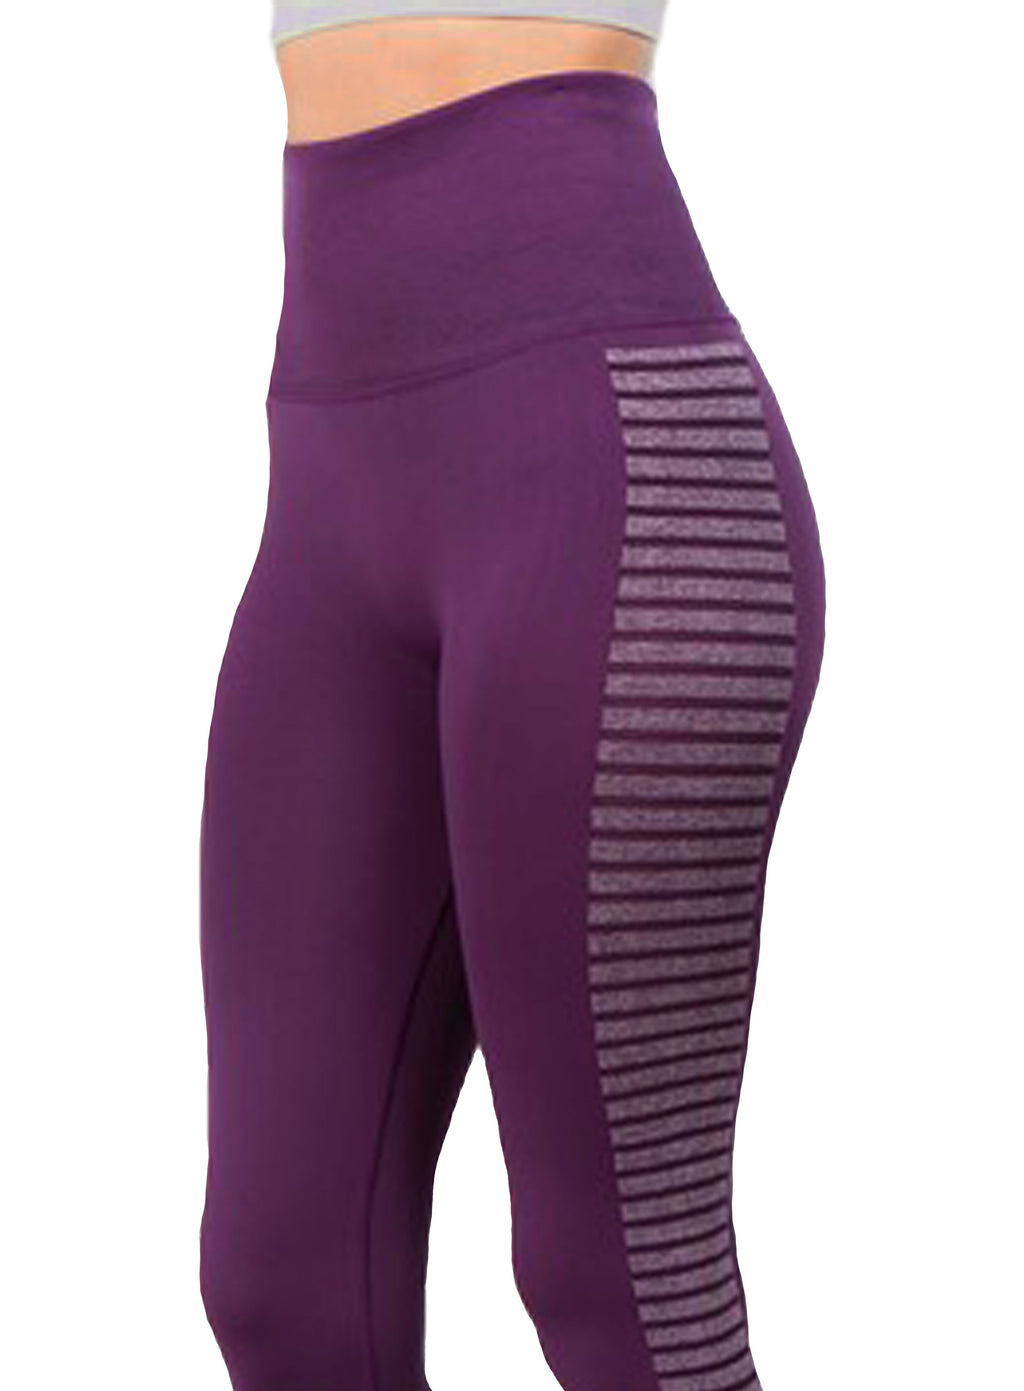 PLUM MY WORLD - High Waistband Leggings